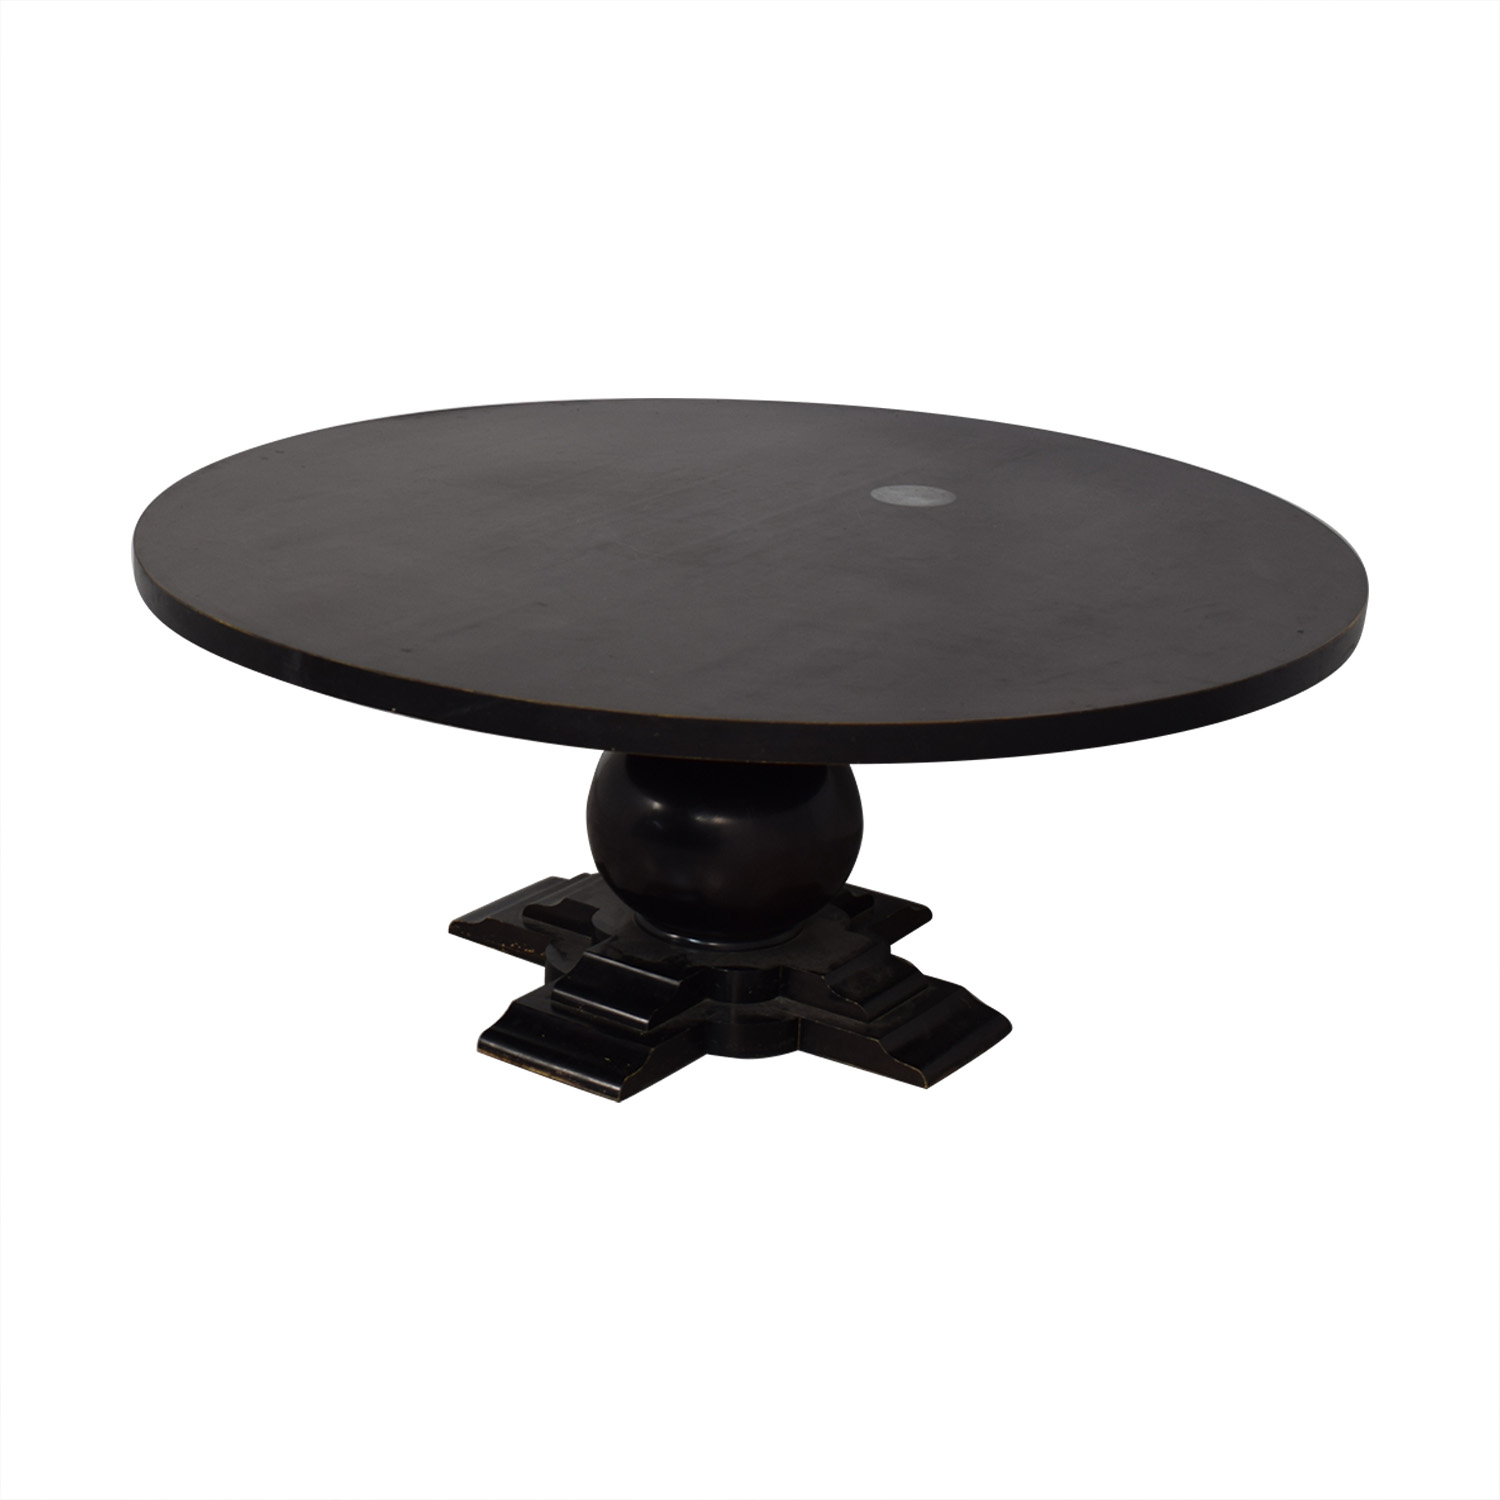 Crate & Barrel Round Dinner Table / Dinner Tables